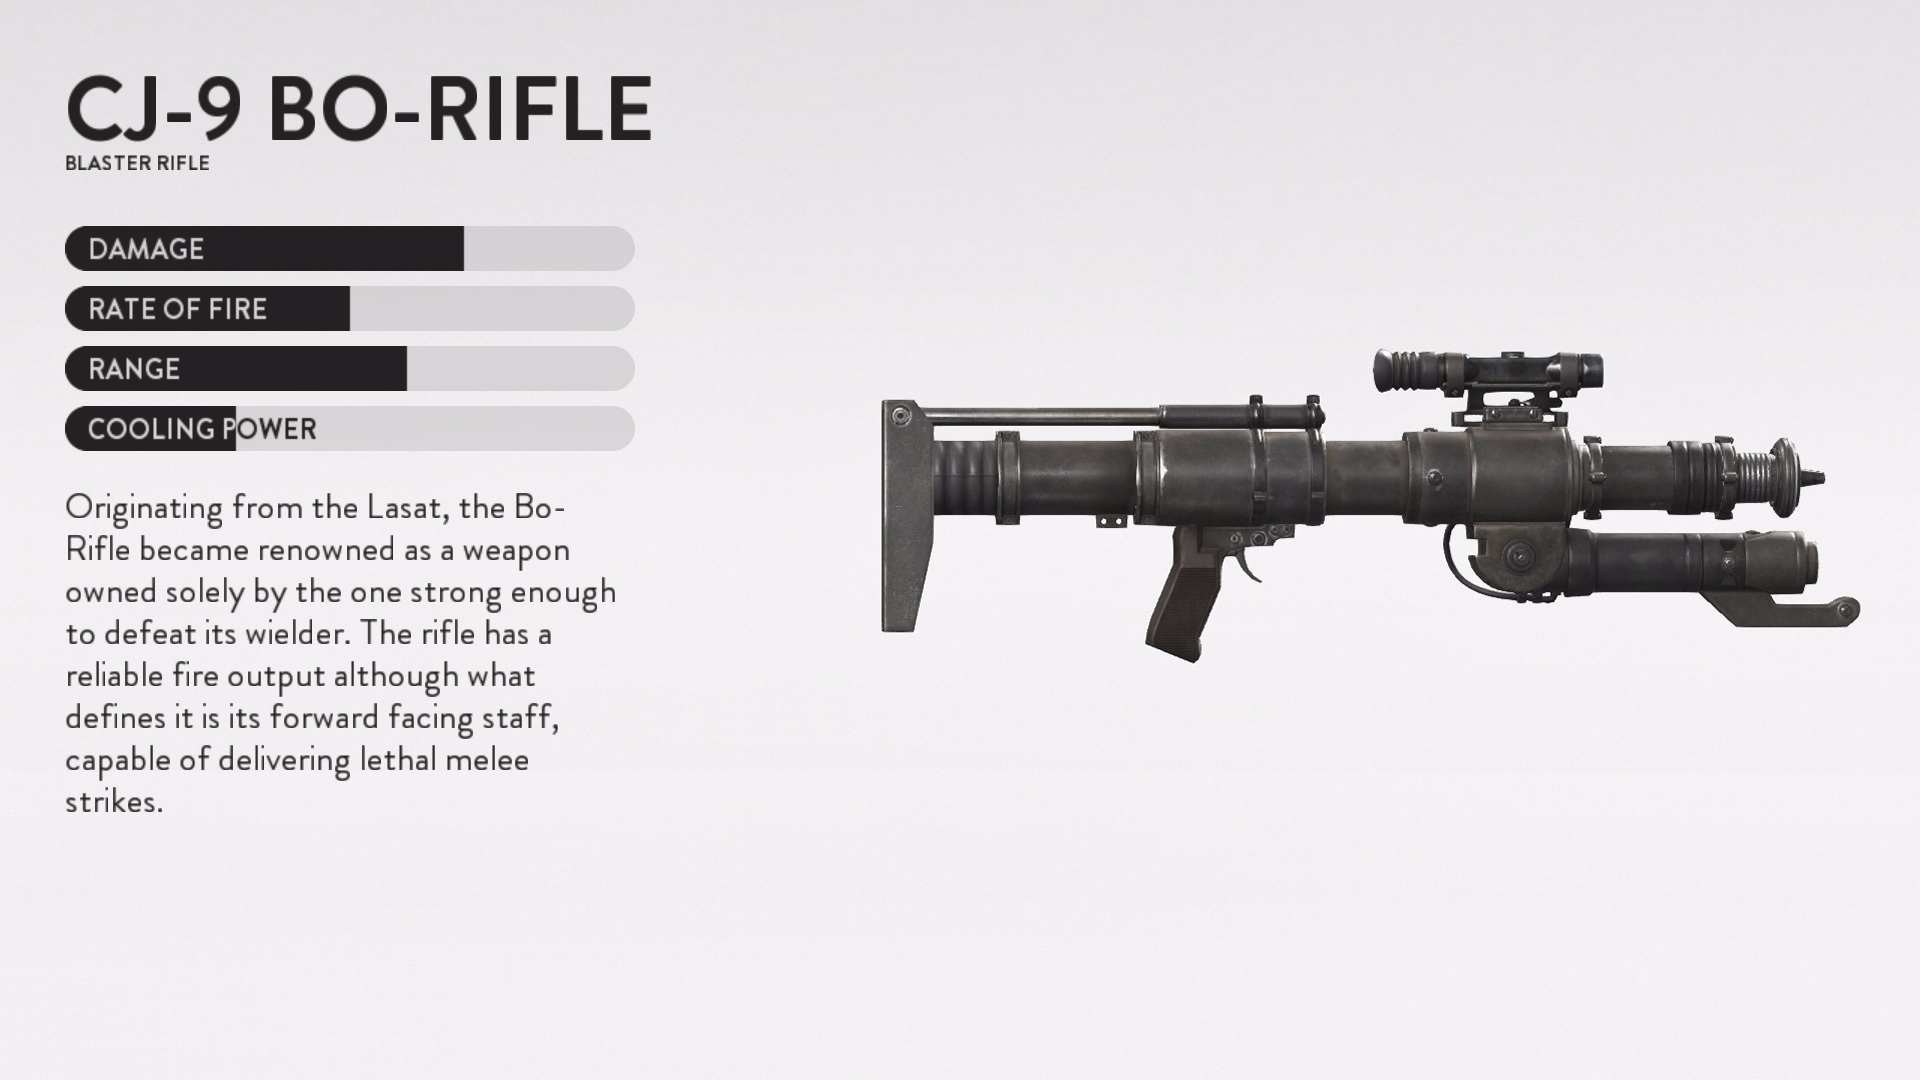 star wars battlefront death star dlc bo-rifle weapon details